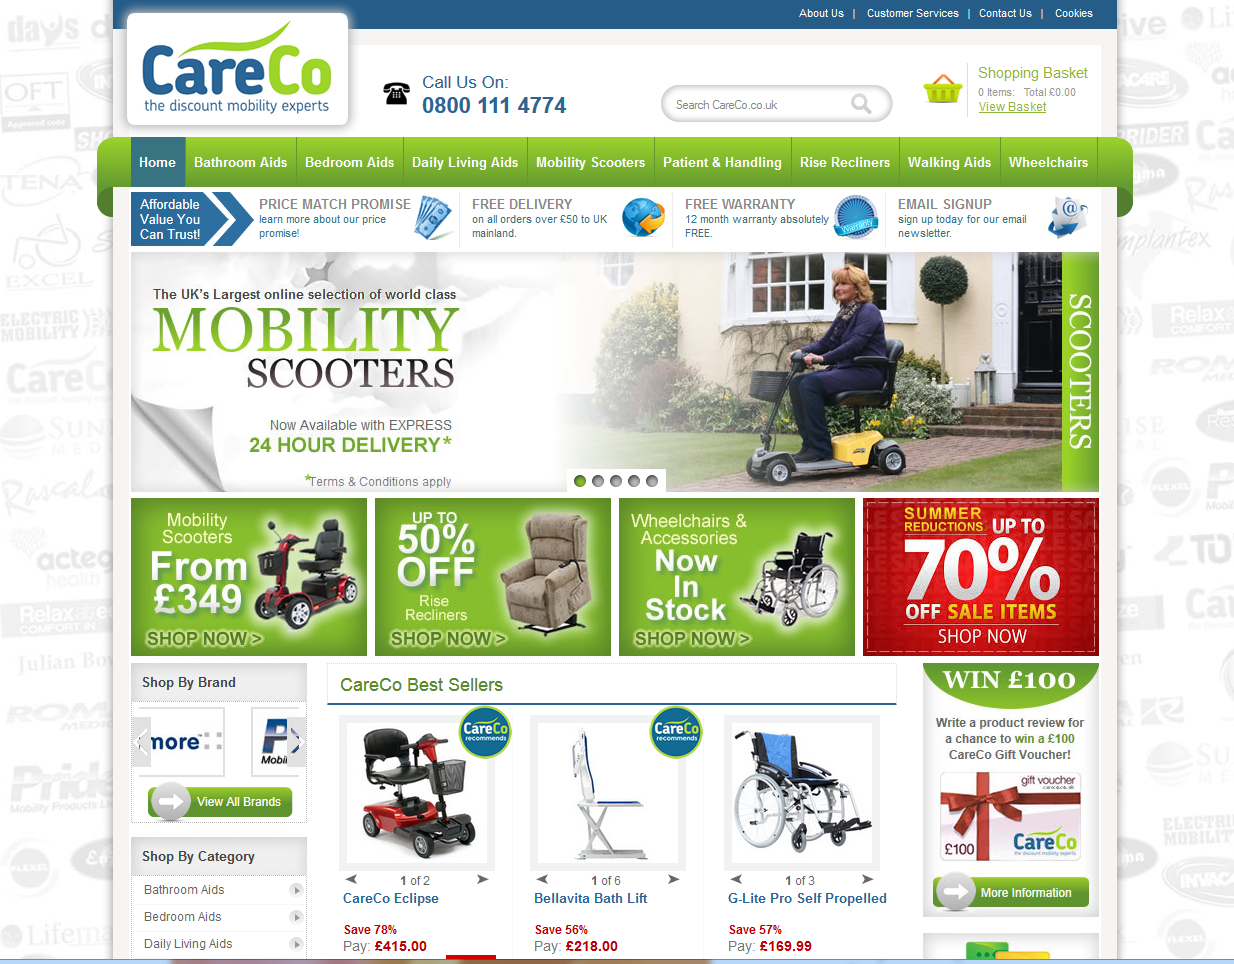 Clients New eCommerce Site